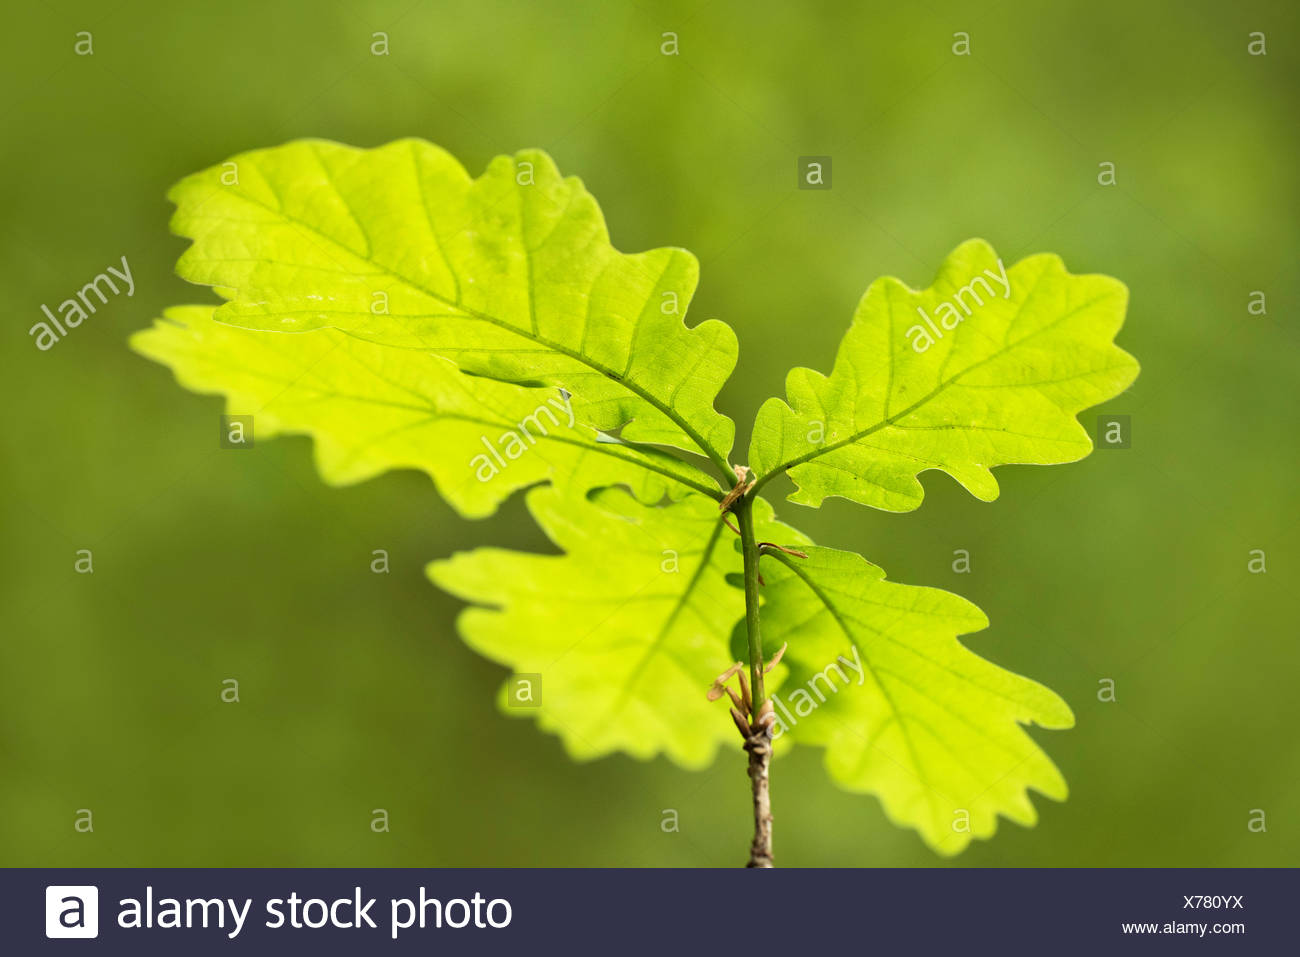 English Oak Tree Sapling Quercus robur UK - Stock Image